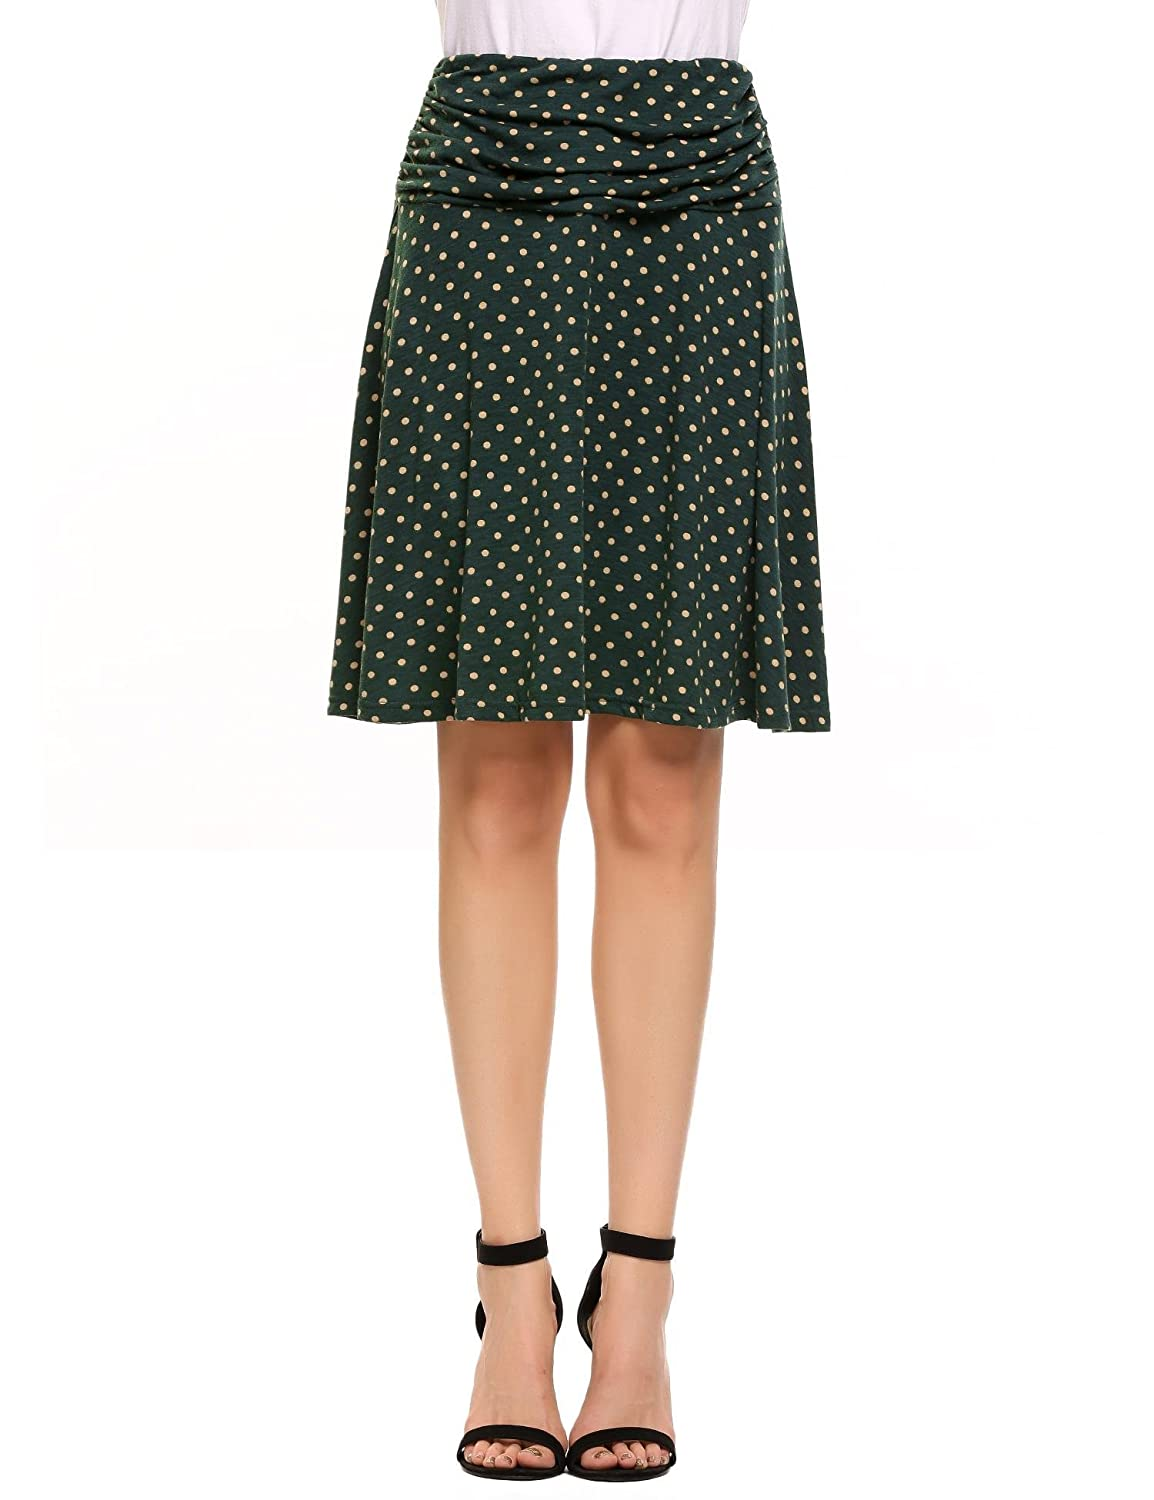 Meaneor Women Ruched Fold Over Waist Polka Dot Stretchy Casual Flared Skirt #MAH014481